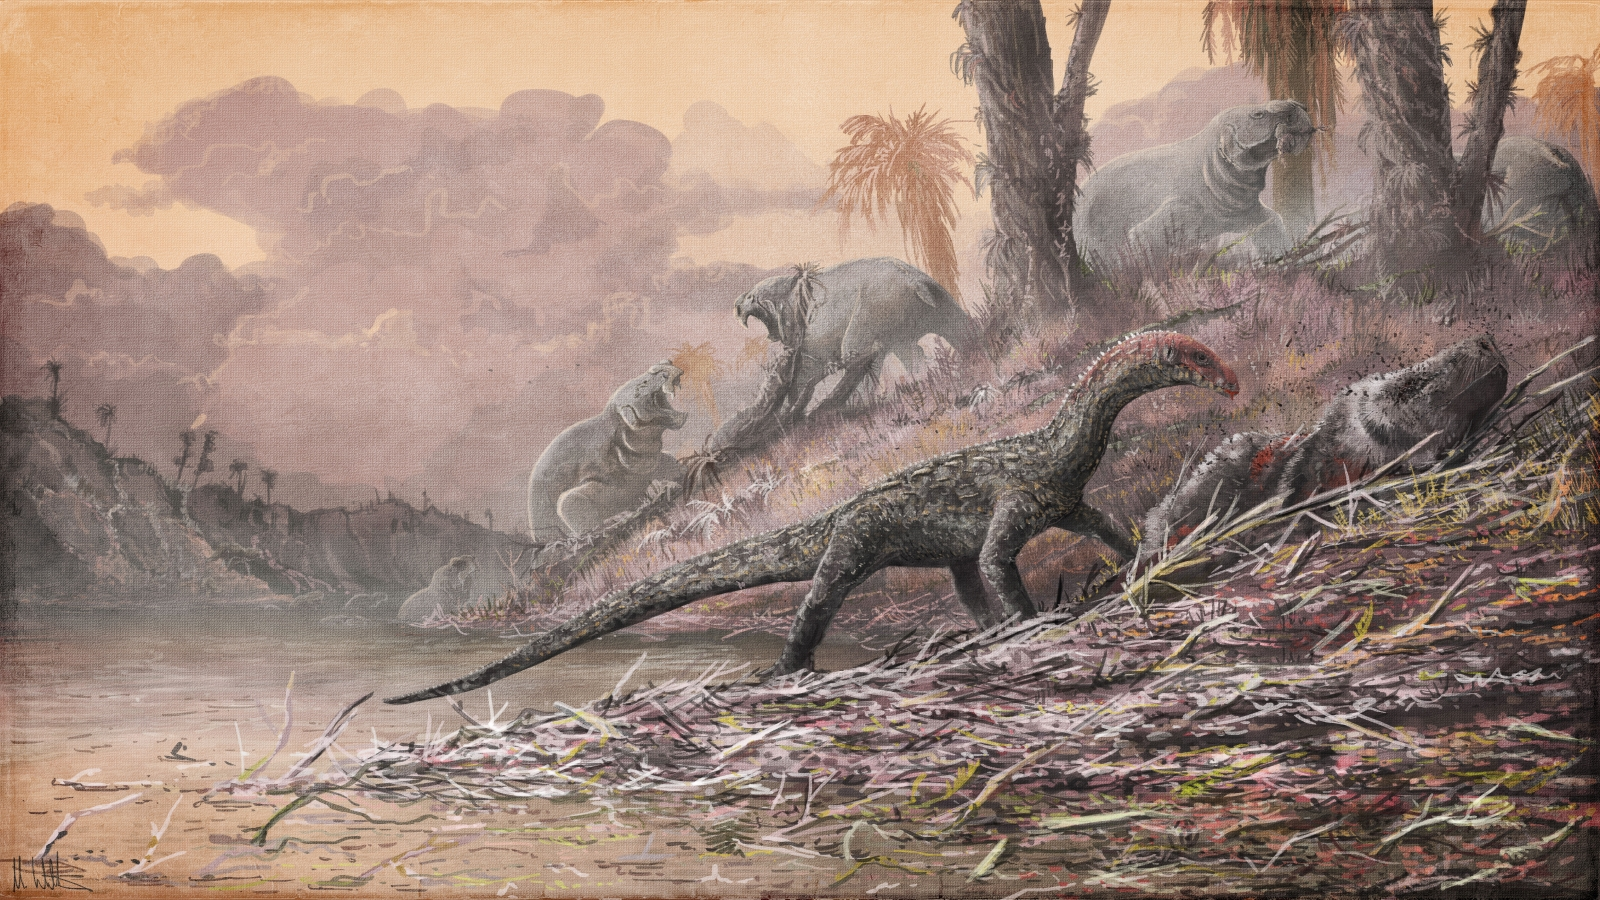 Crocodile-Like Ancient Cousin, Teleocrater Rhadinus, Confuses Scientists — Dinosaur Evolution